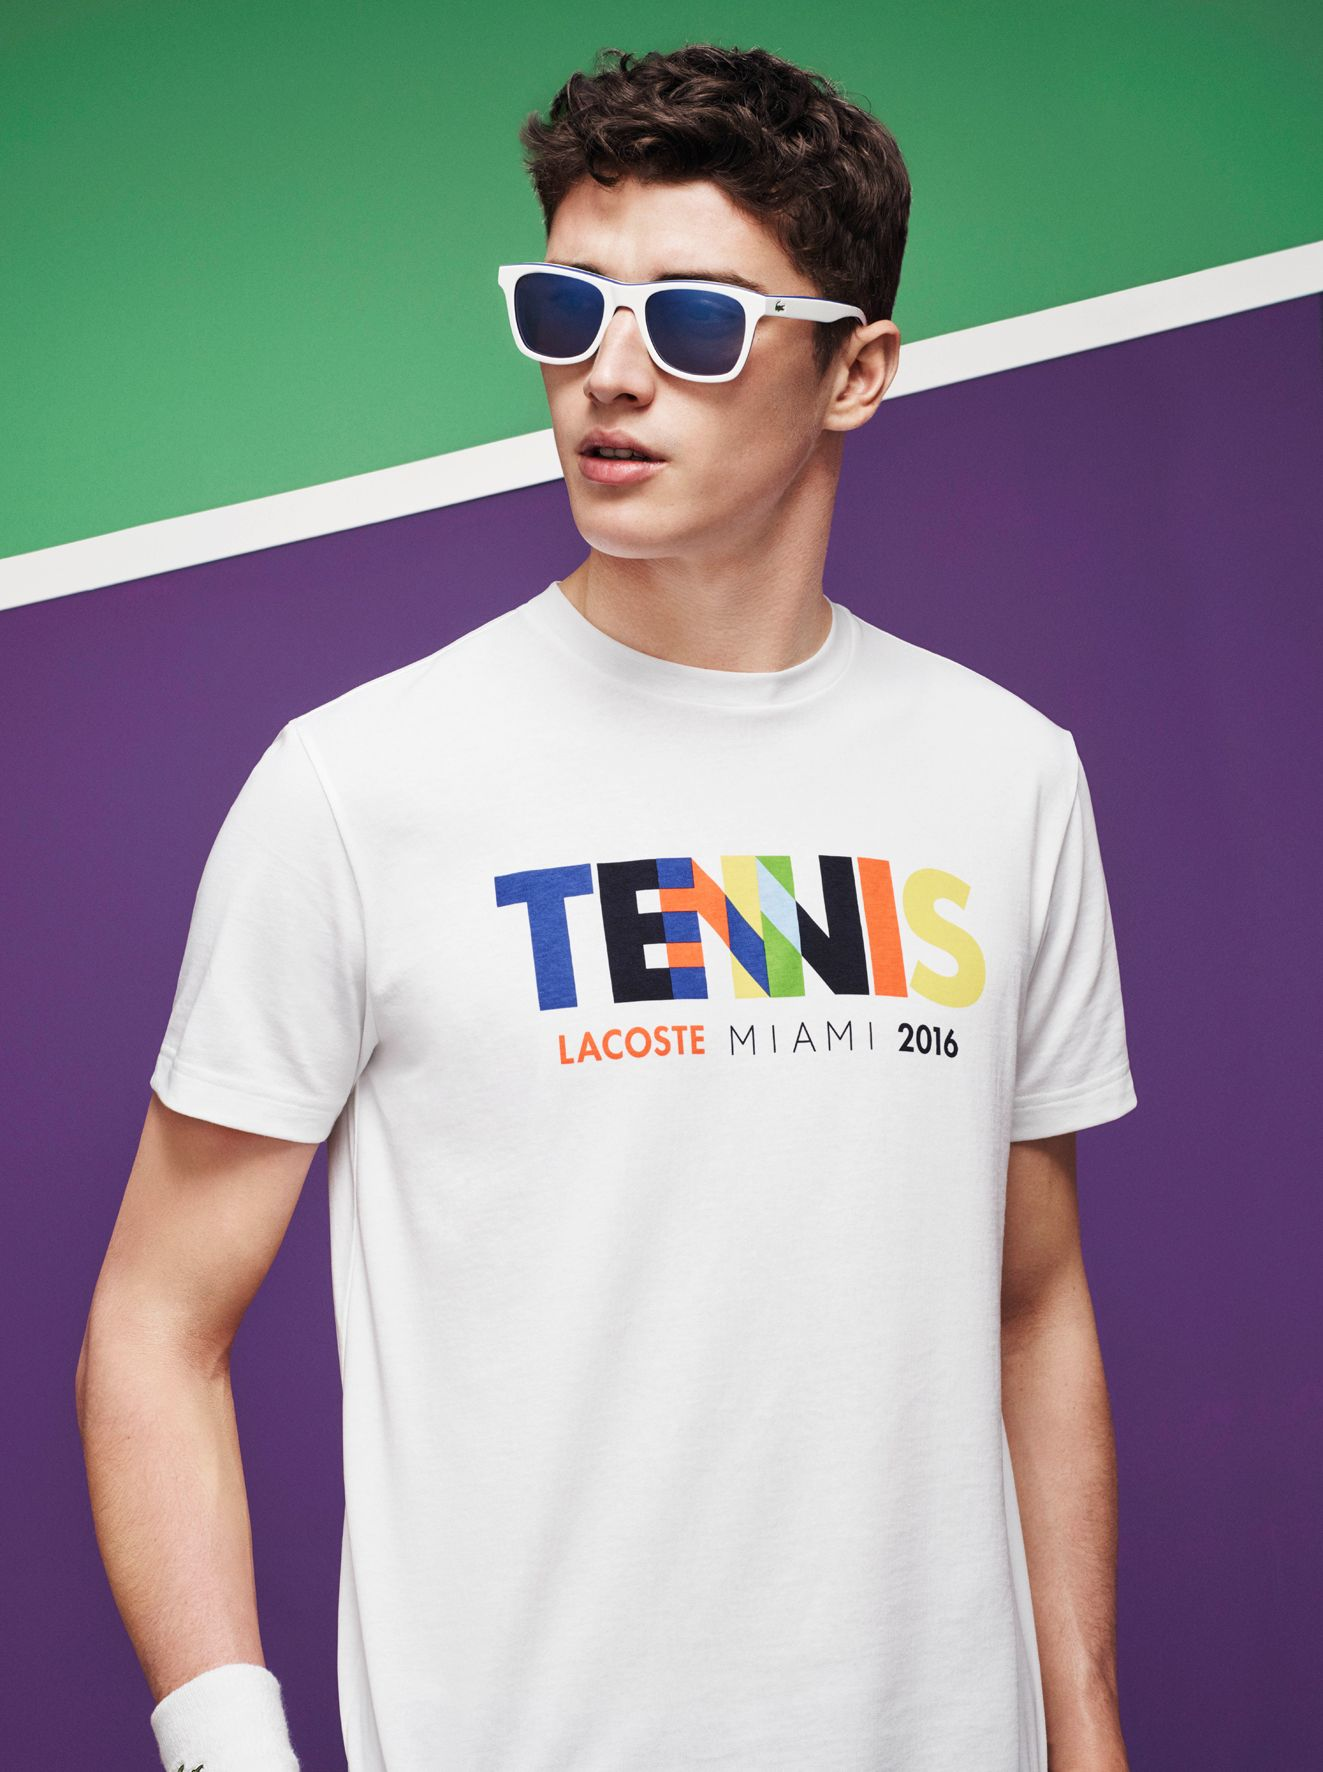 Miami Open Tennis Shirts Tennis Clothes Tennis Quotes